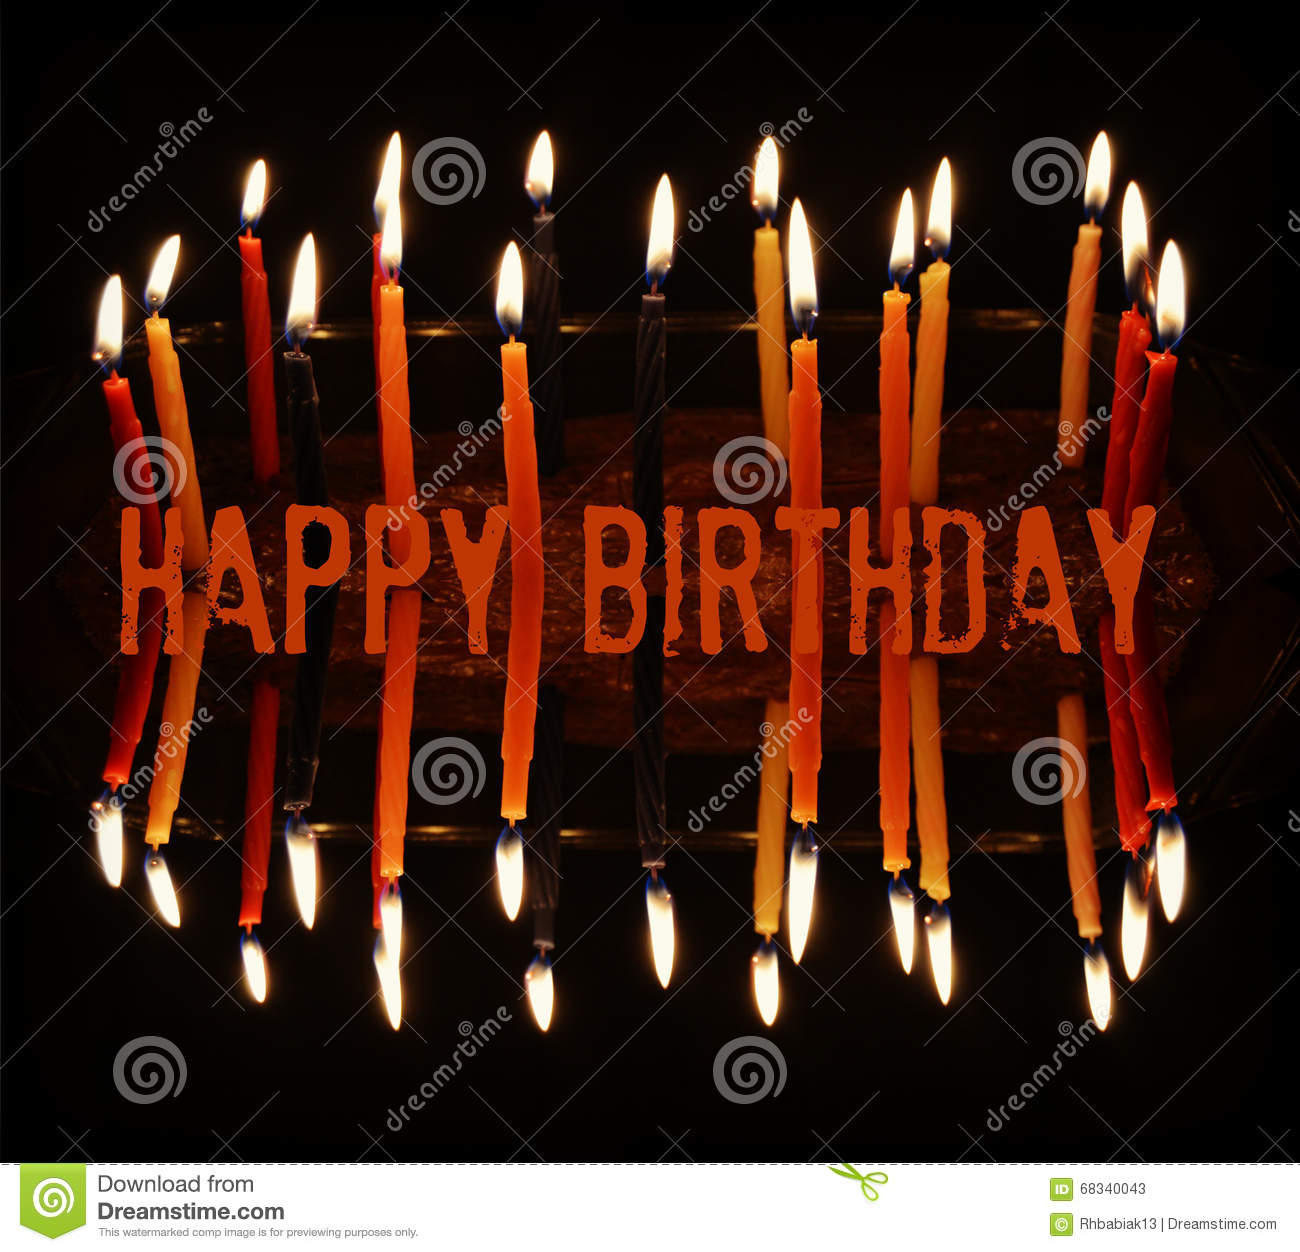 Happy Birthday Candles In Orange Red Yellow With A Mirrored Effect And The Words Written Middle